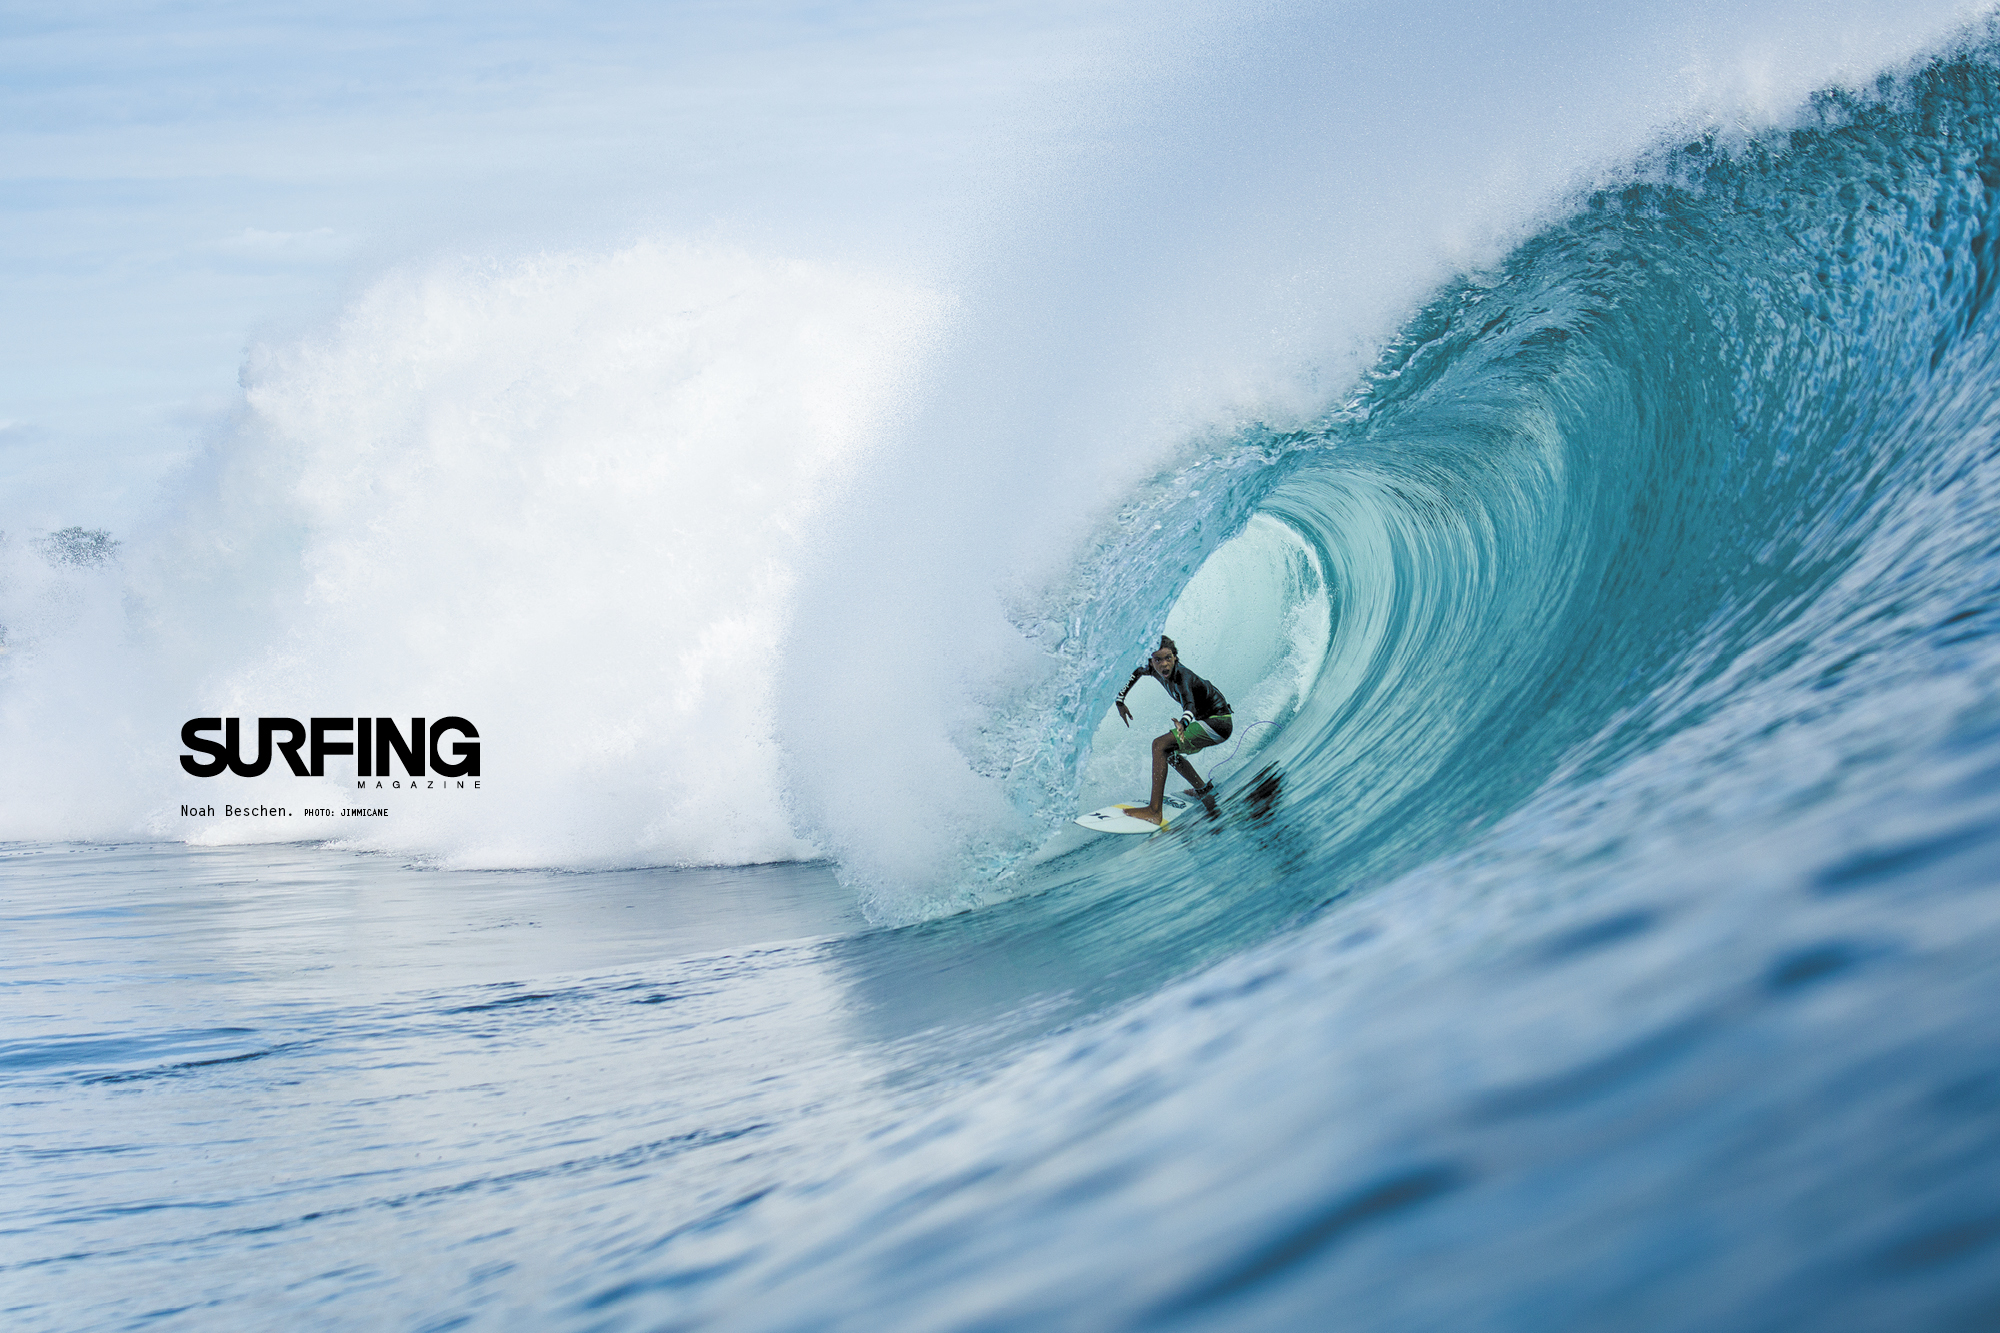 surfing wallpaper: issue 12, 2015 - surfer magazine